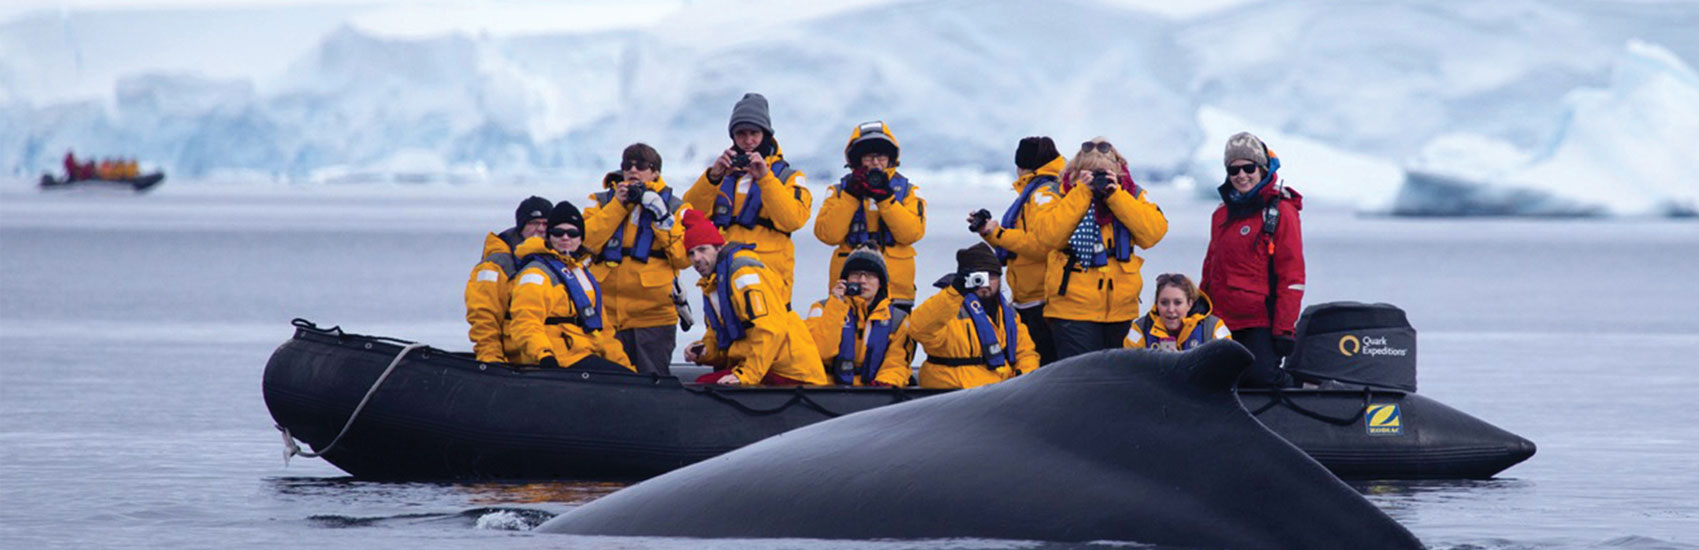 Save with Quark Expeditions 2